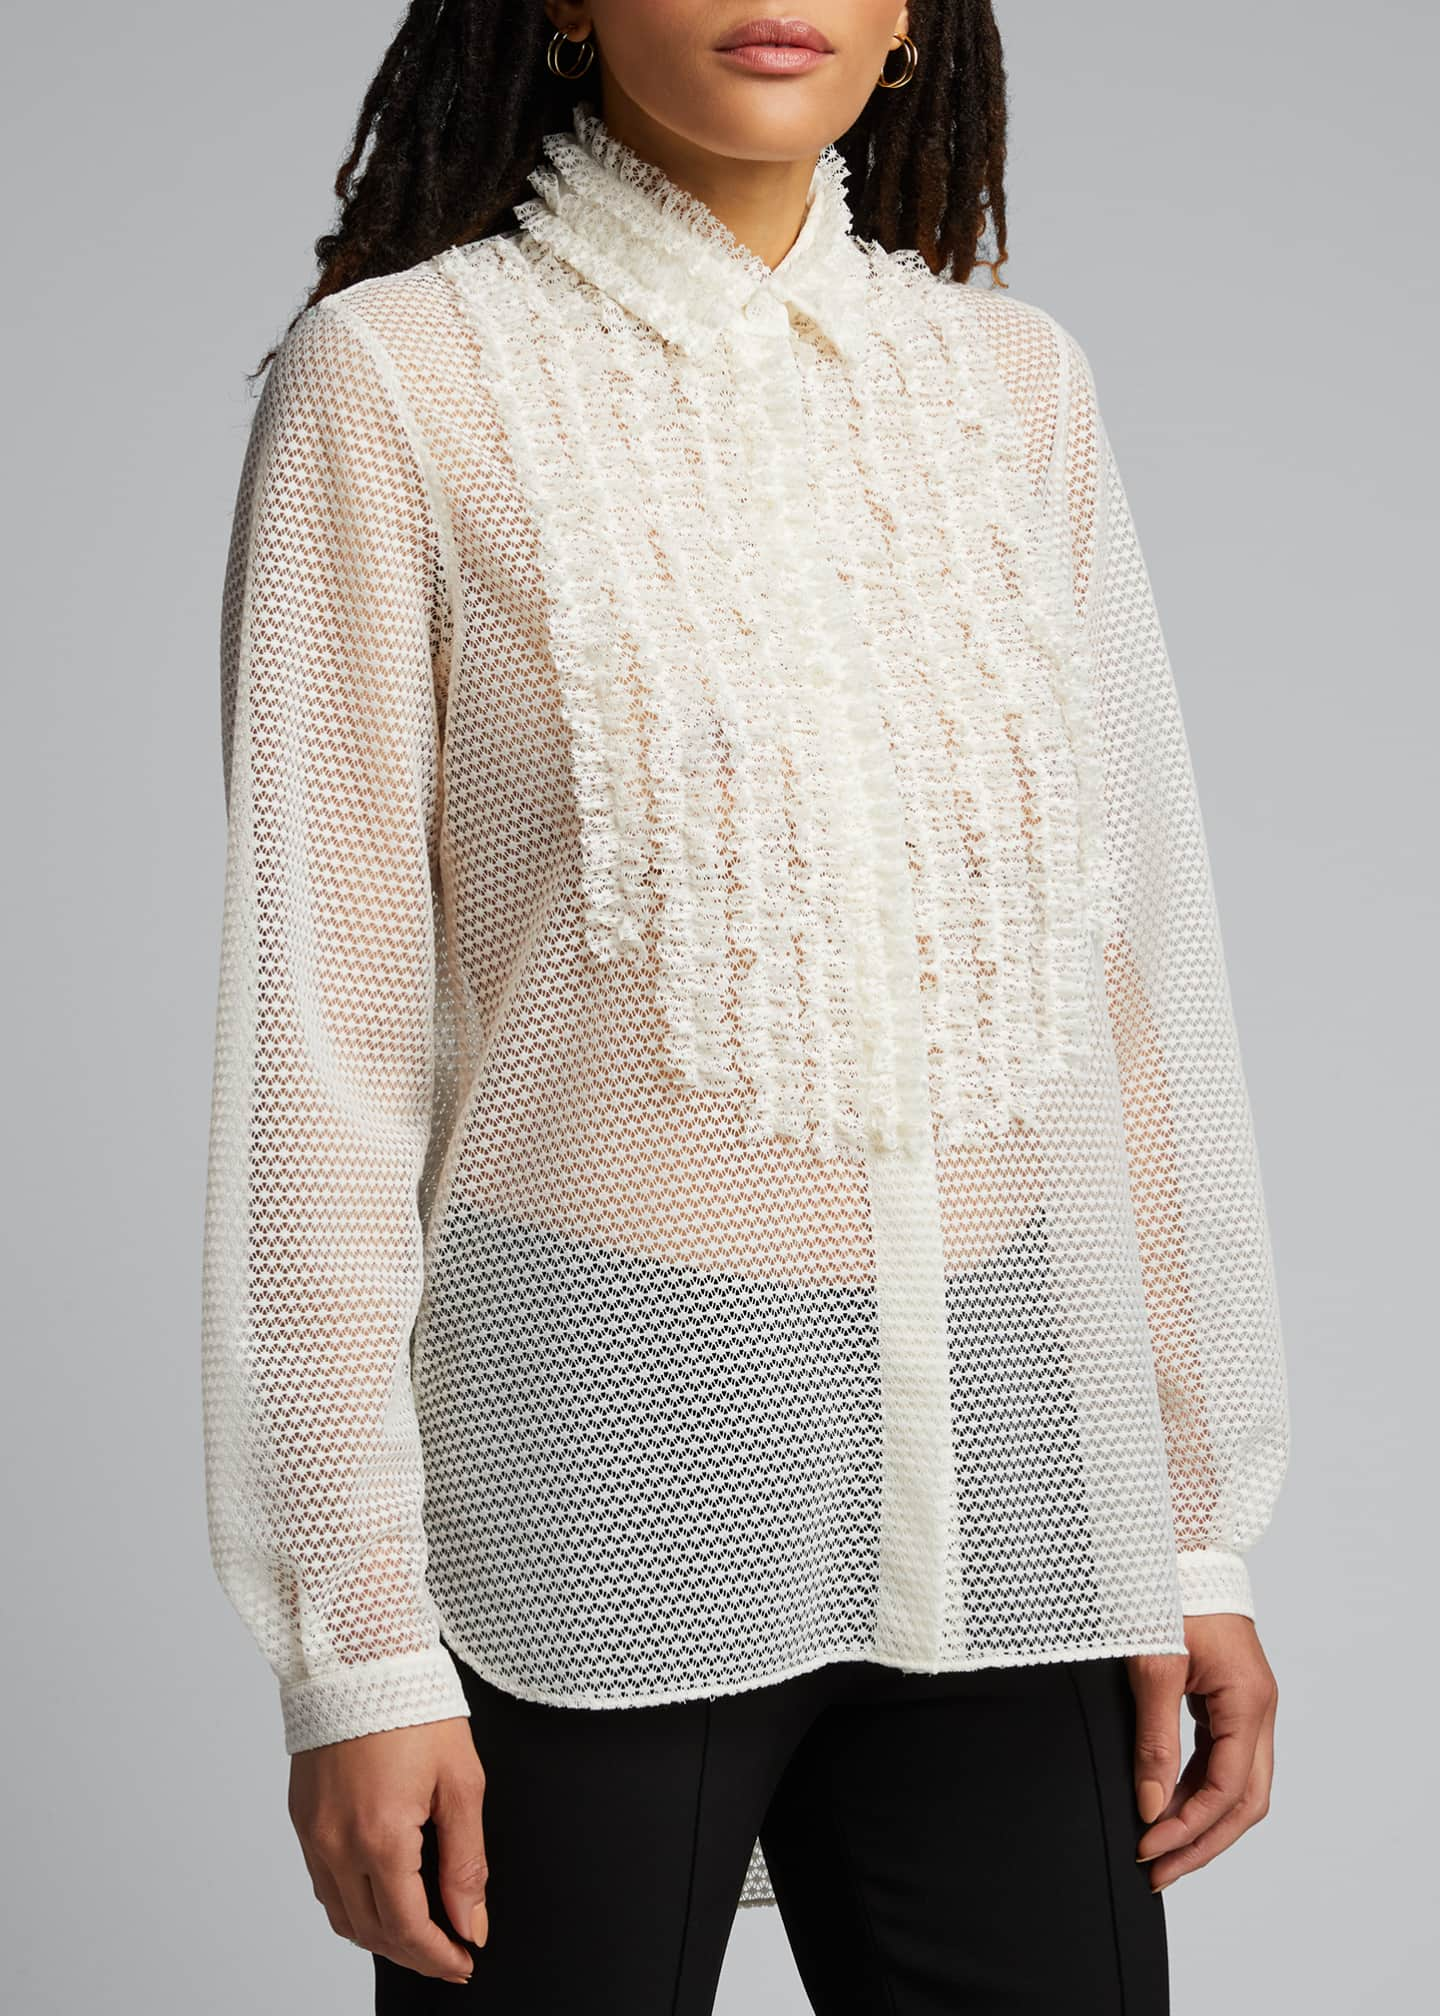 Image 3 of 5: Sakura Dotted Lace Shirt